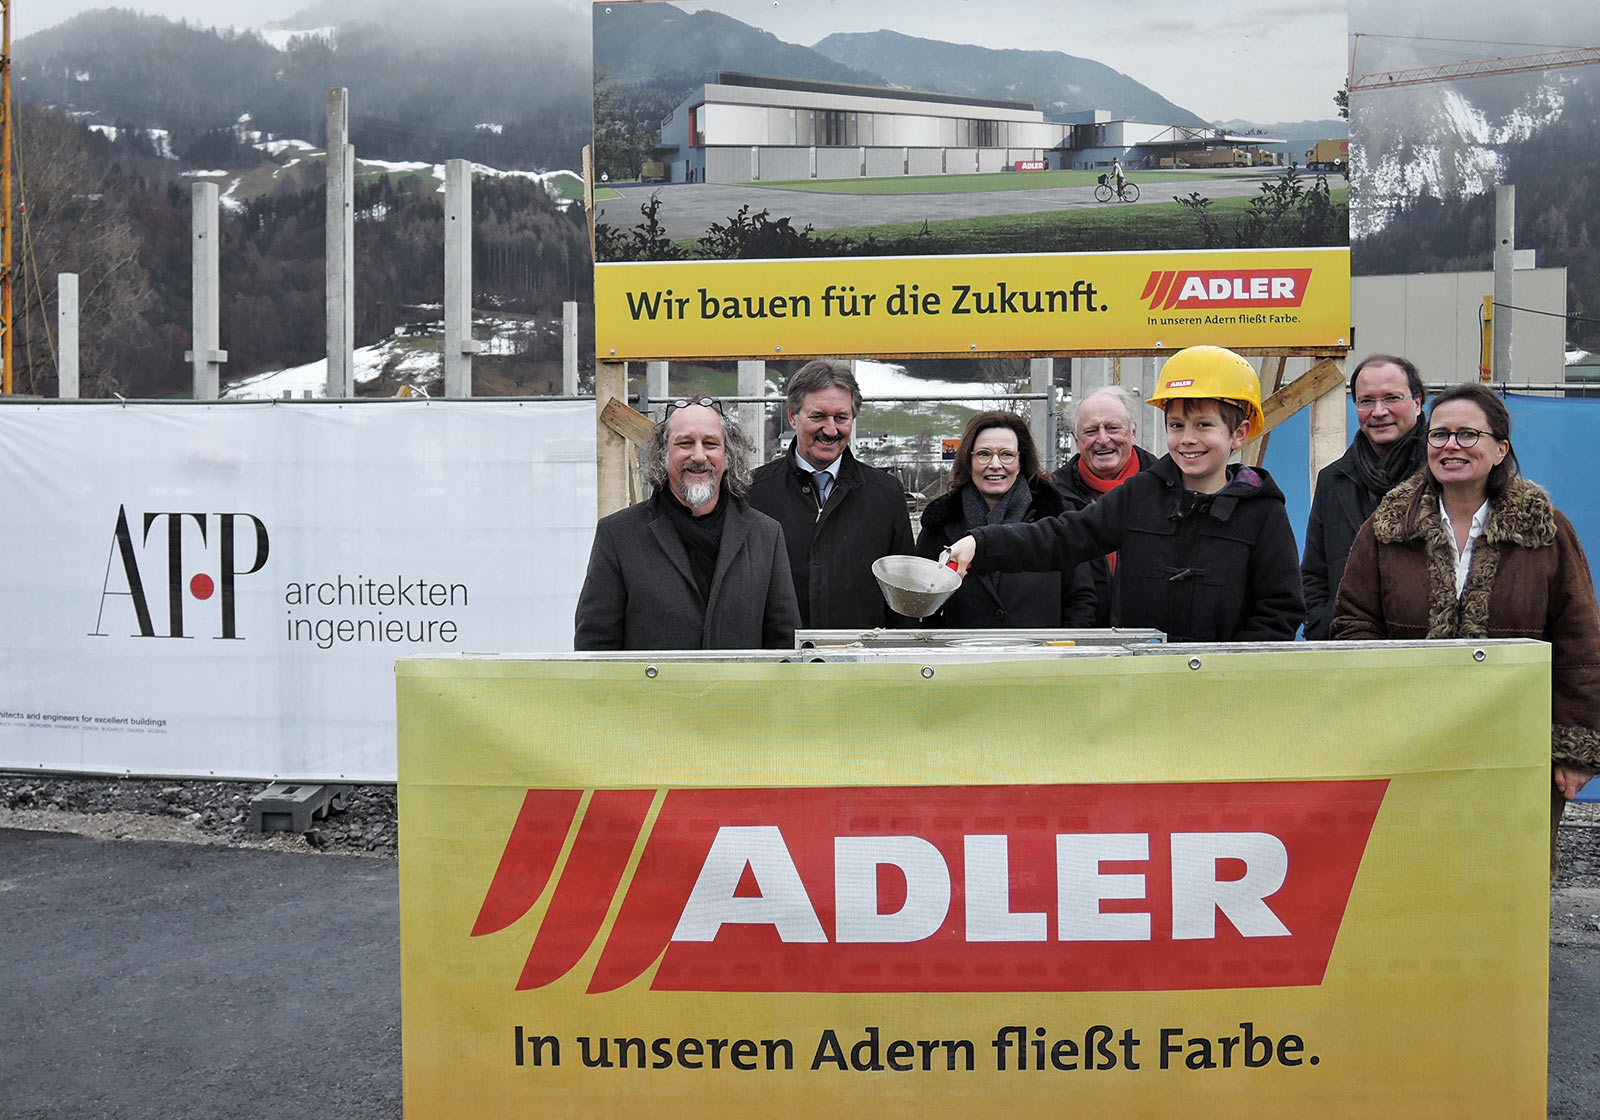 Architect Gerhard Oberrauch (ATP), Mayor Lintner, ADLER CEO Andrea Berghofer,  Günther Berghofer and Sixtus, Thomas Bodner and Claudia Berghofer are clearly delighted. Photo: ADLER